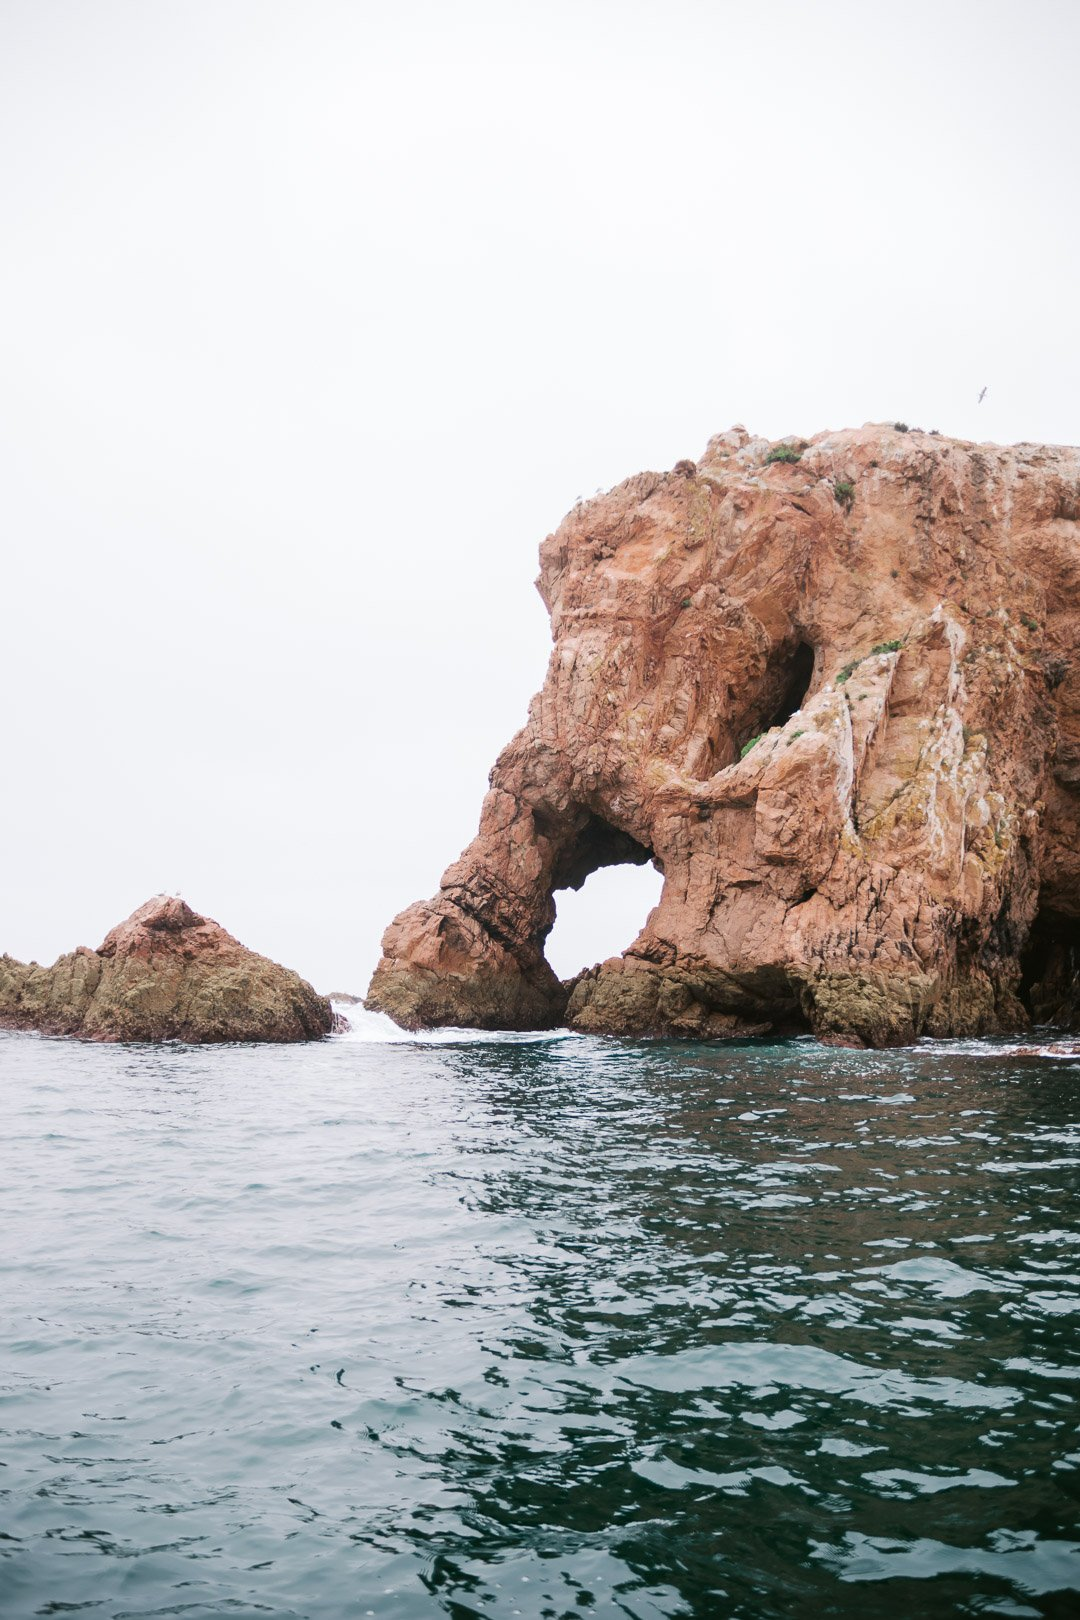 The elephant rock viewed from the small boat tour around Berlenga Grande in the Berlenga Islands Portugal